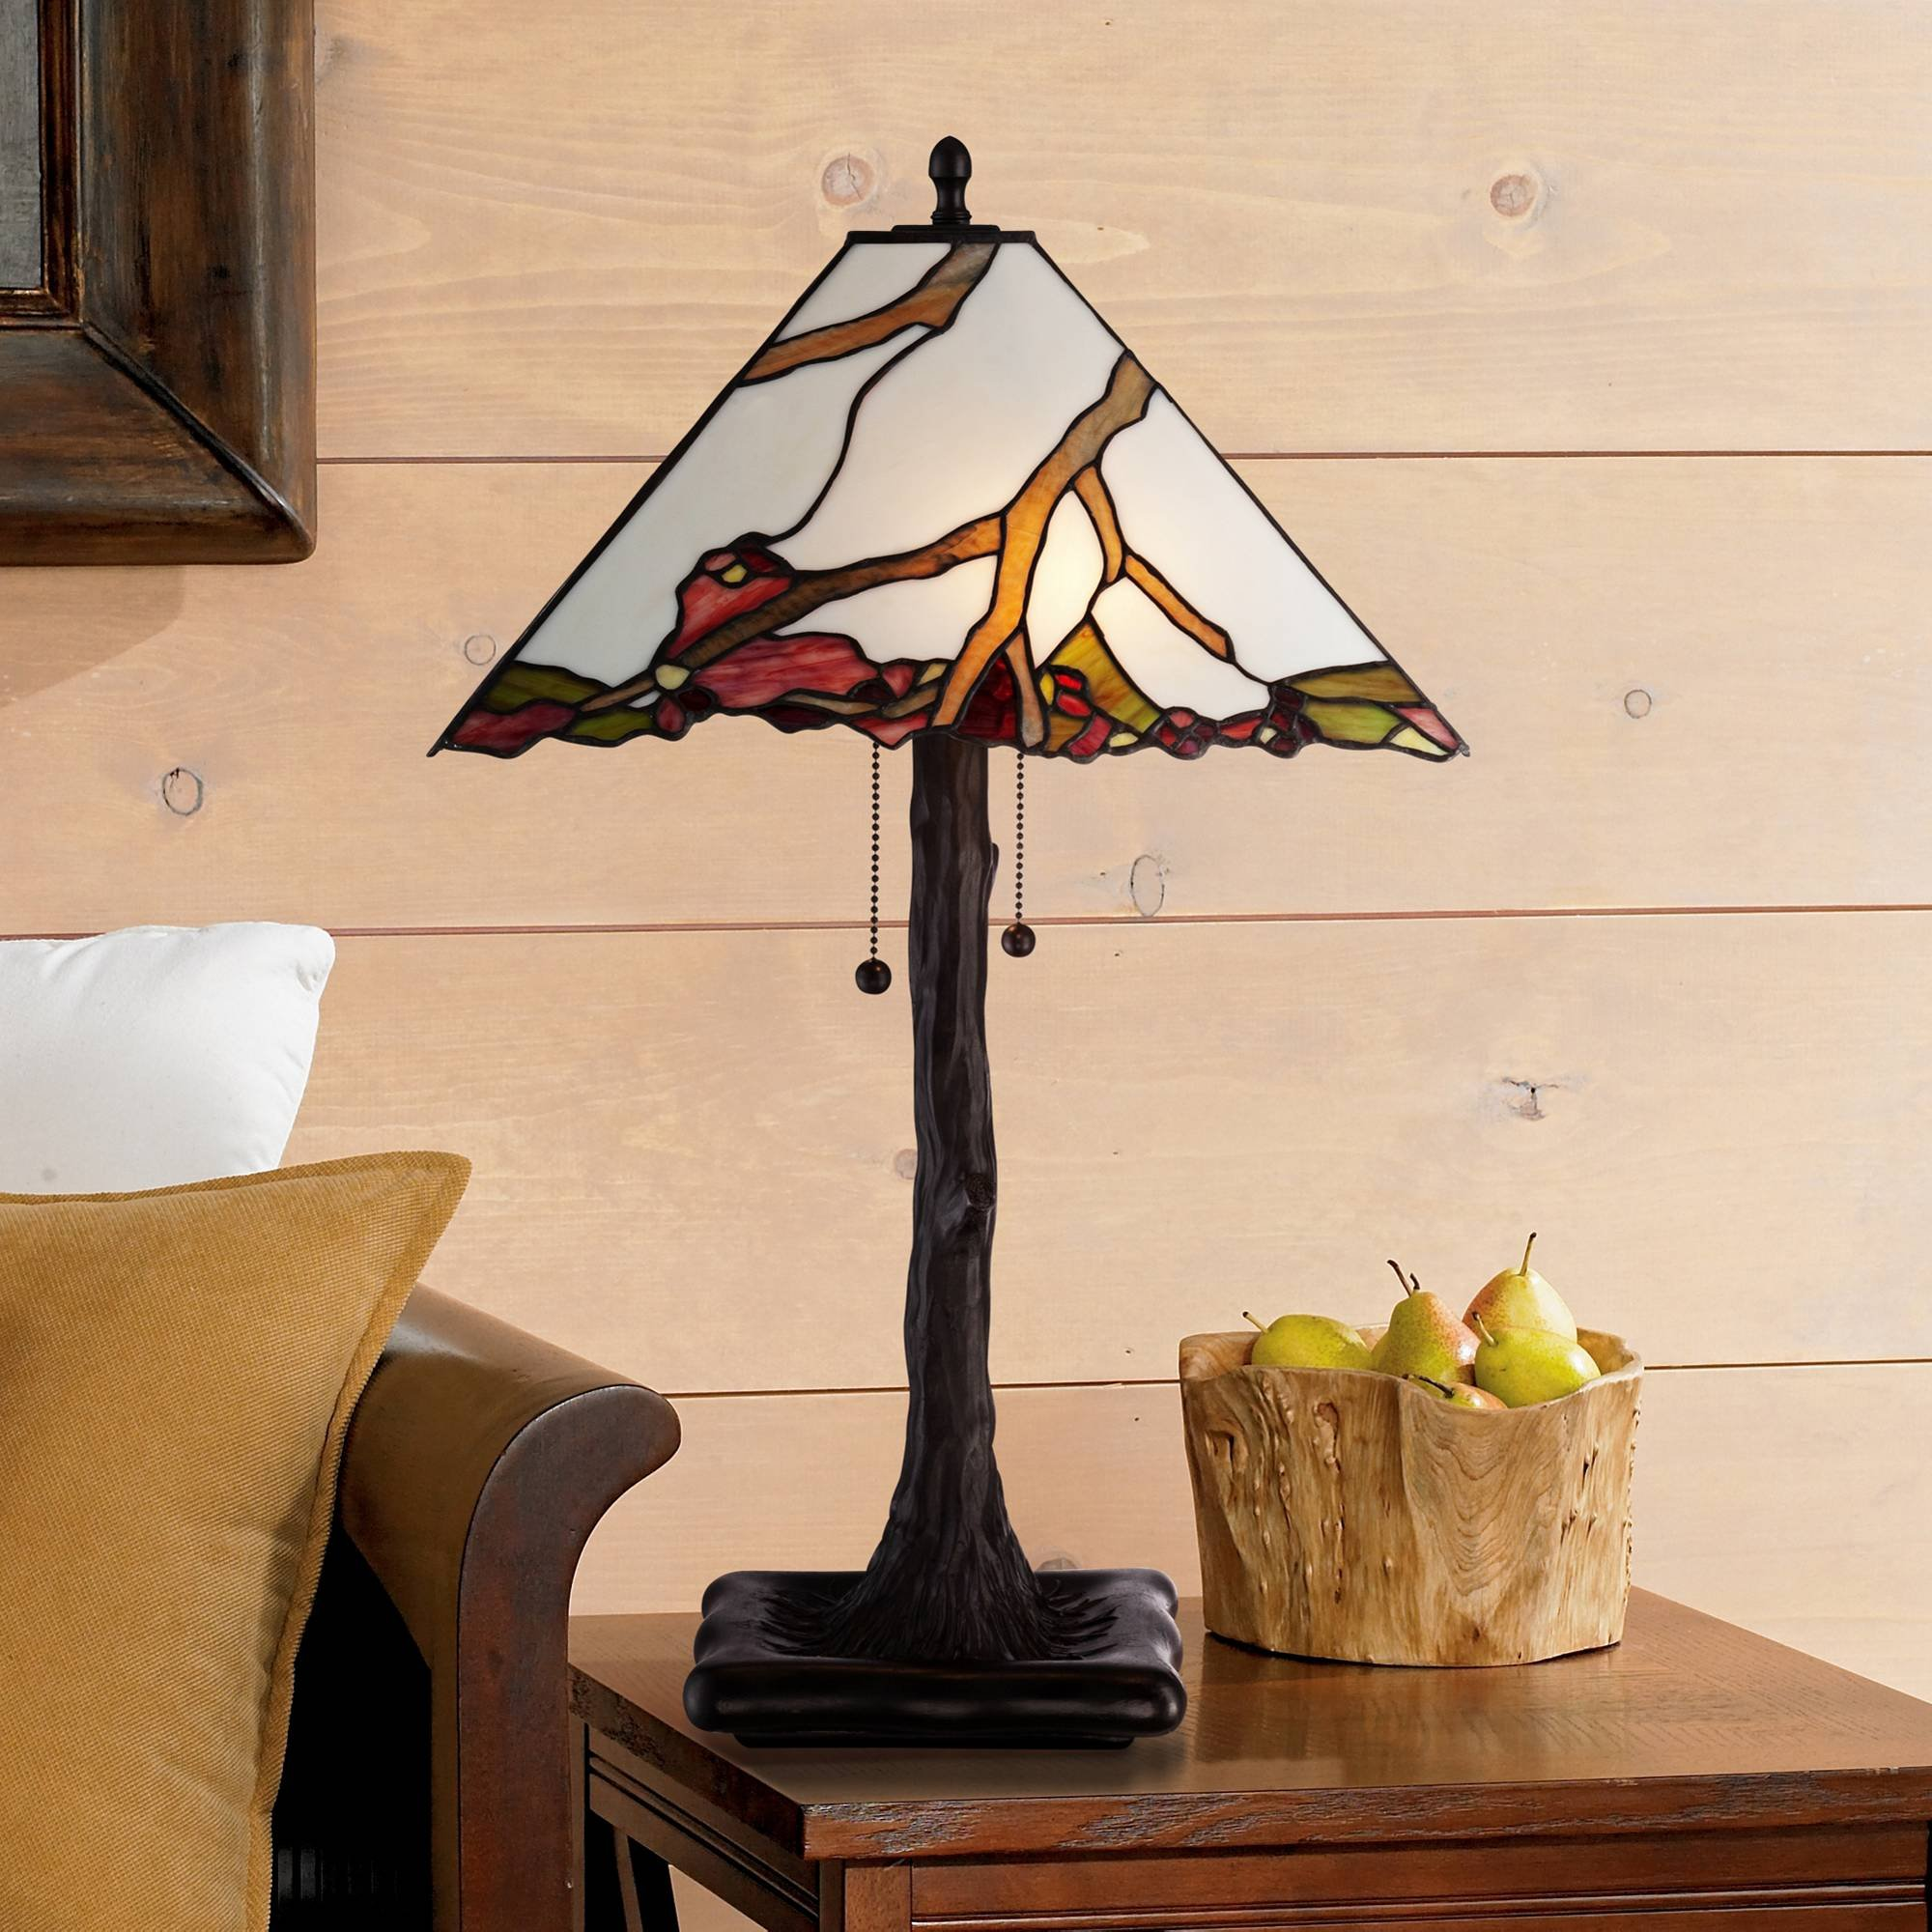 Tiffany Style Table Lamp Dark Bronze Cherry Blossom Stained Glass Shade for Living Room Family Bedroom Bedside Nightstand - Robert Louis Tiffany